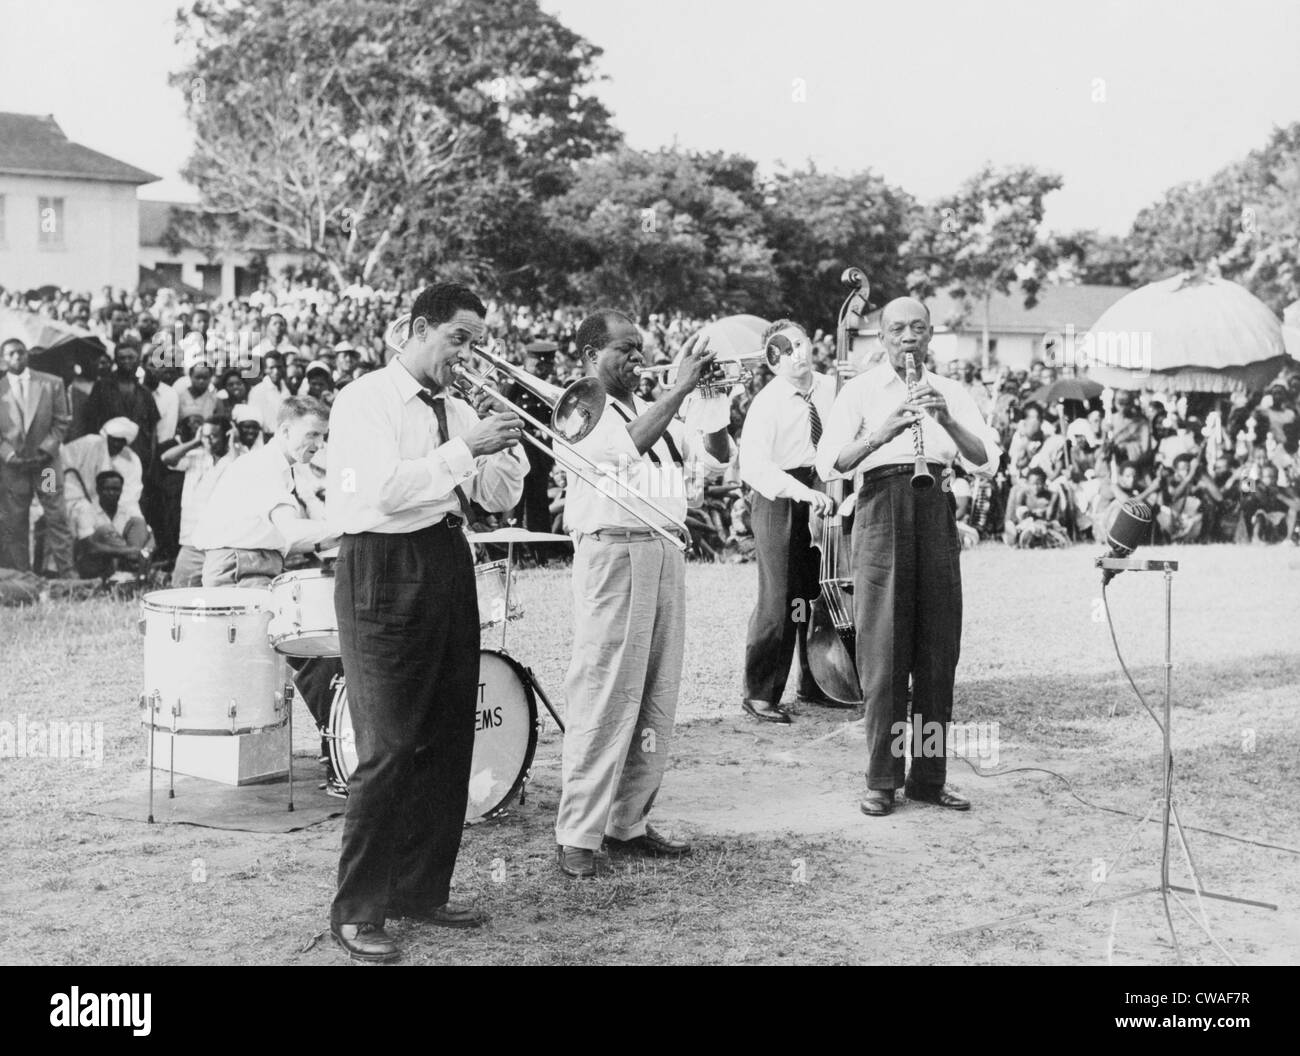 Louis Armstrong (1901-1971), African American Jazz musician, playing trumpet with band at an outdoor gathering in Africa, 1956. Stock Photo